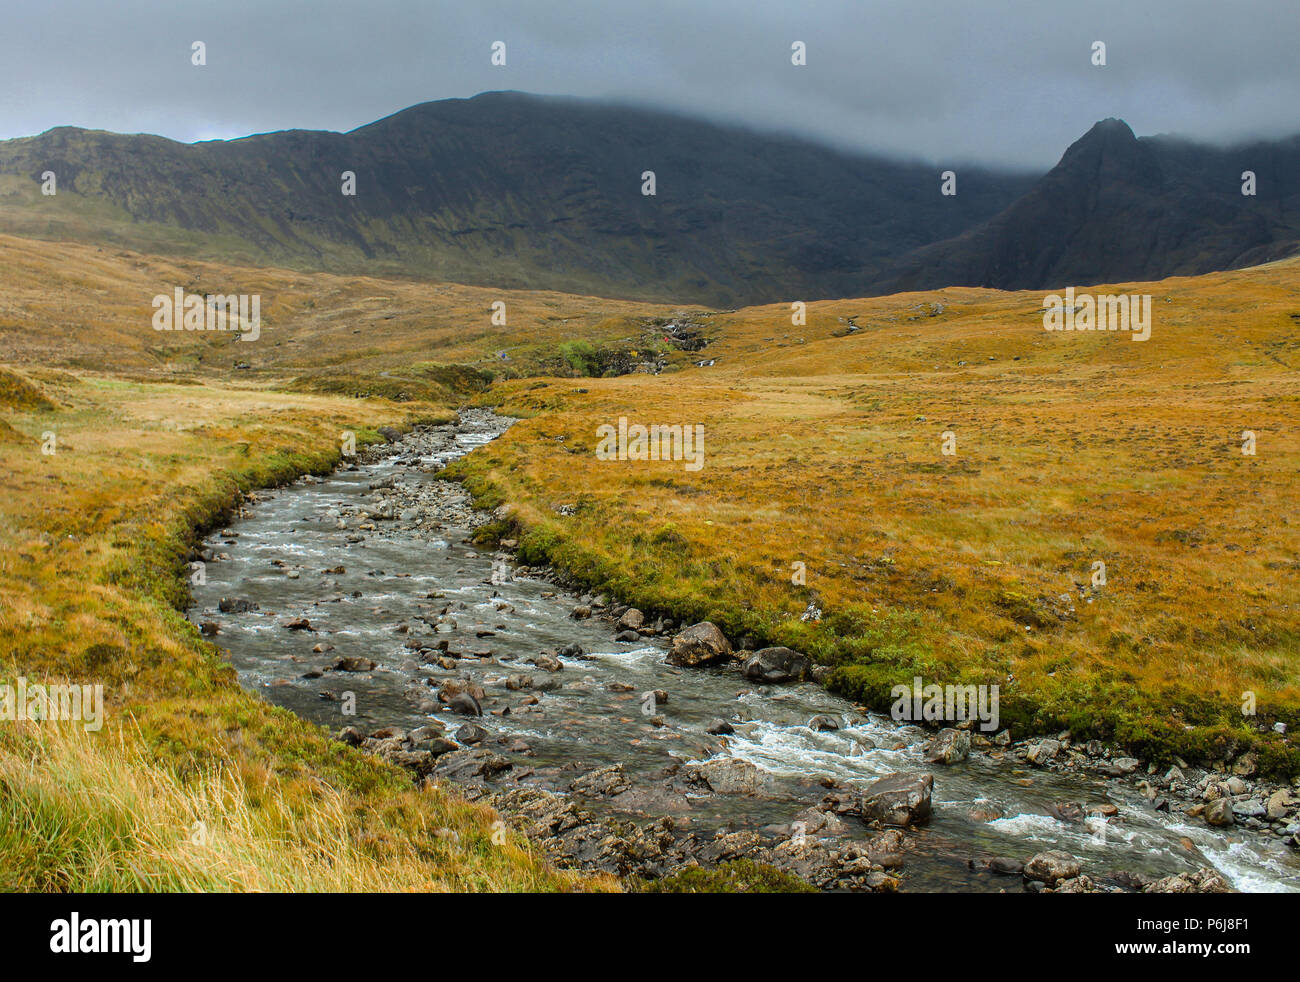 Photo of stream and mountains at the Fairy Pools, Isle of Skye, Scotland. - Stock Image